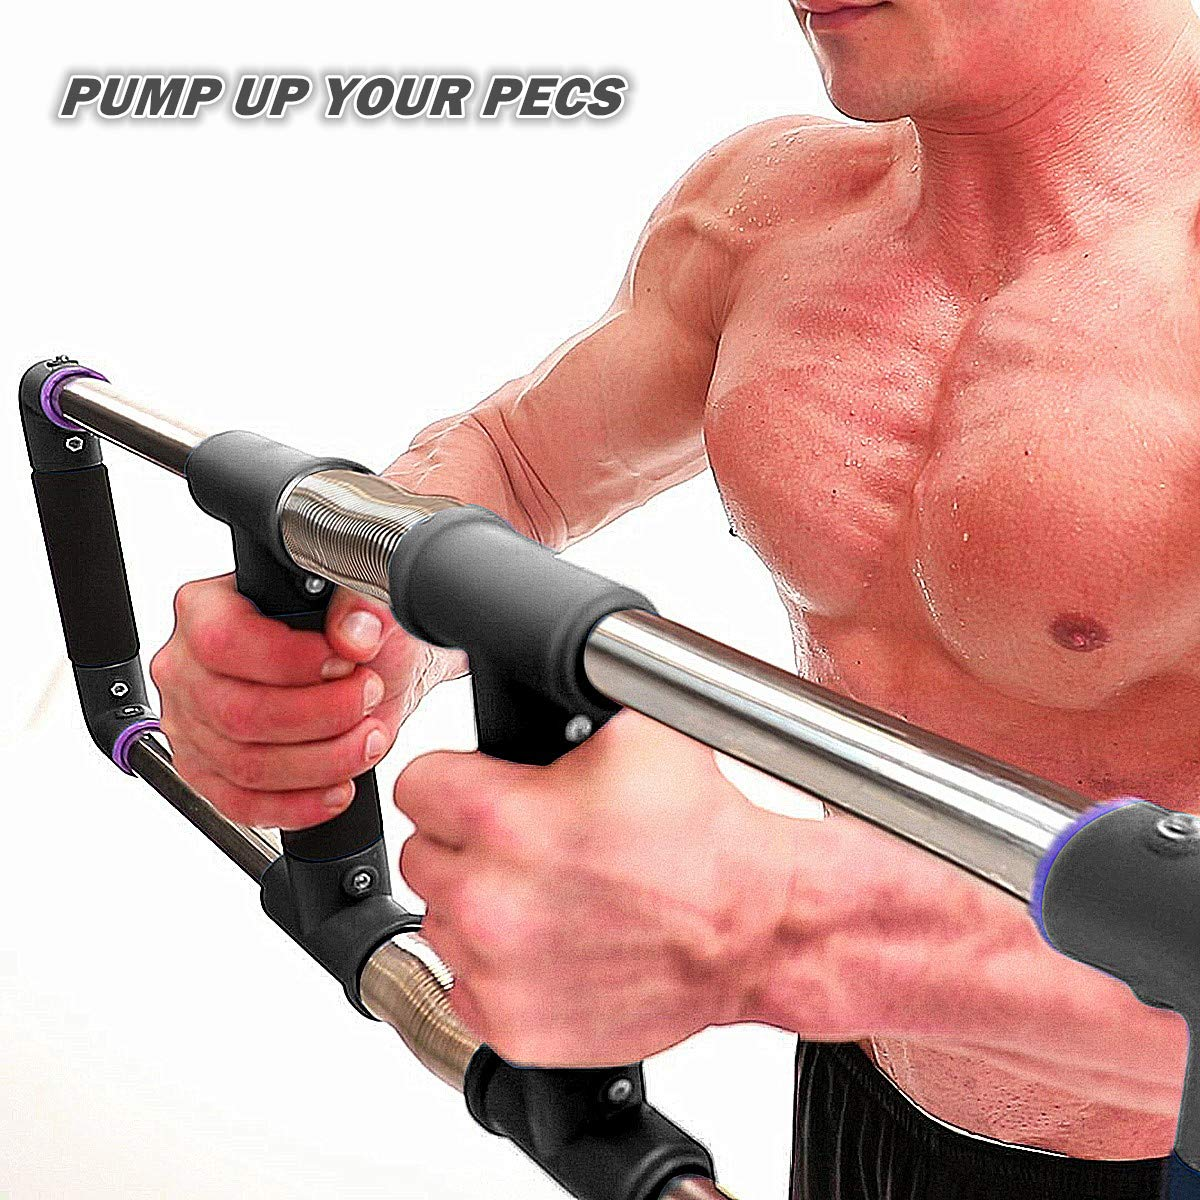 GoFitness Super Push Down Bar - Total Upper Body Workout Equipment, Press Down Machine - Chest Workout, Strength Training, Home Fitness by GoFitness (Image #3)